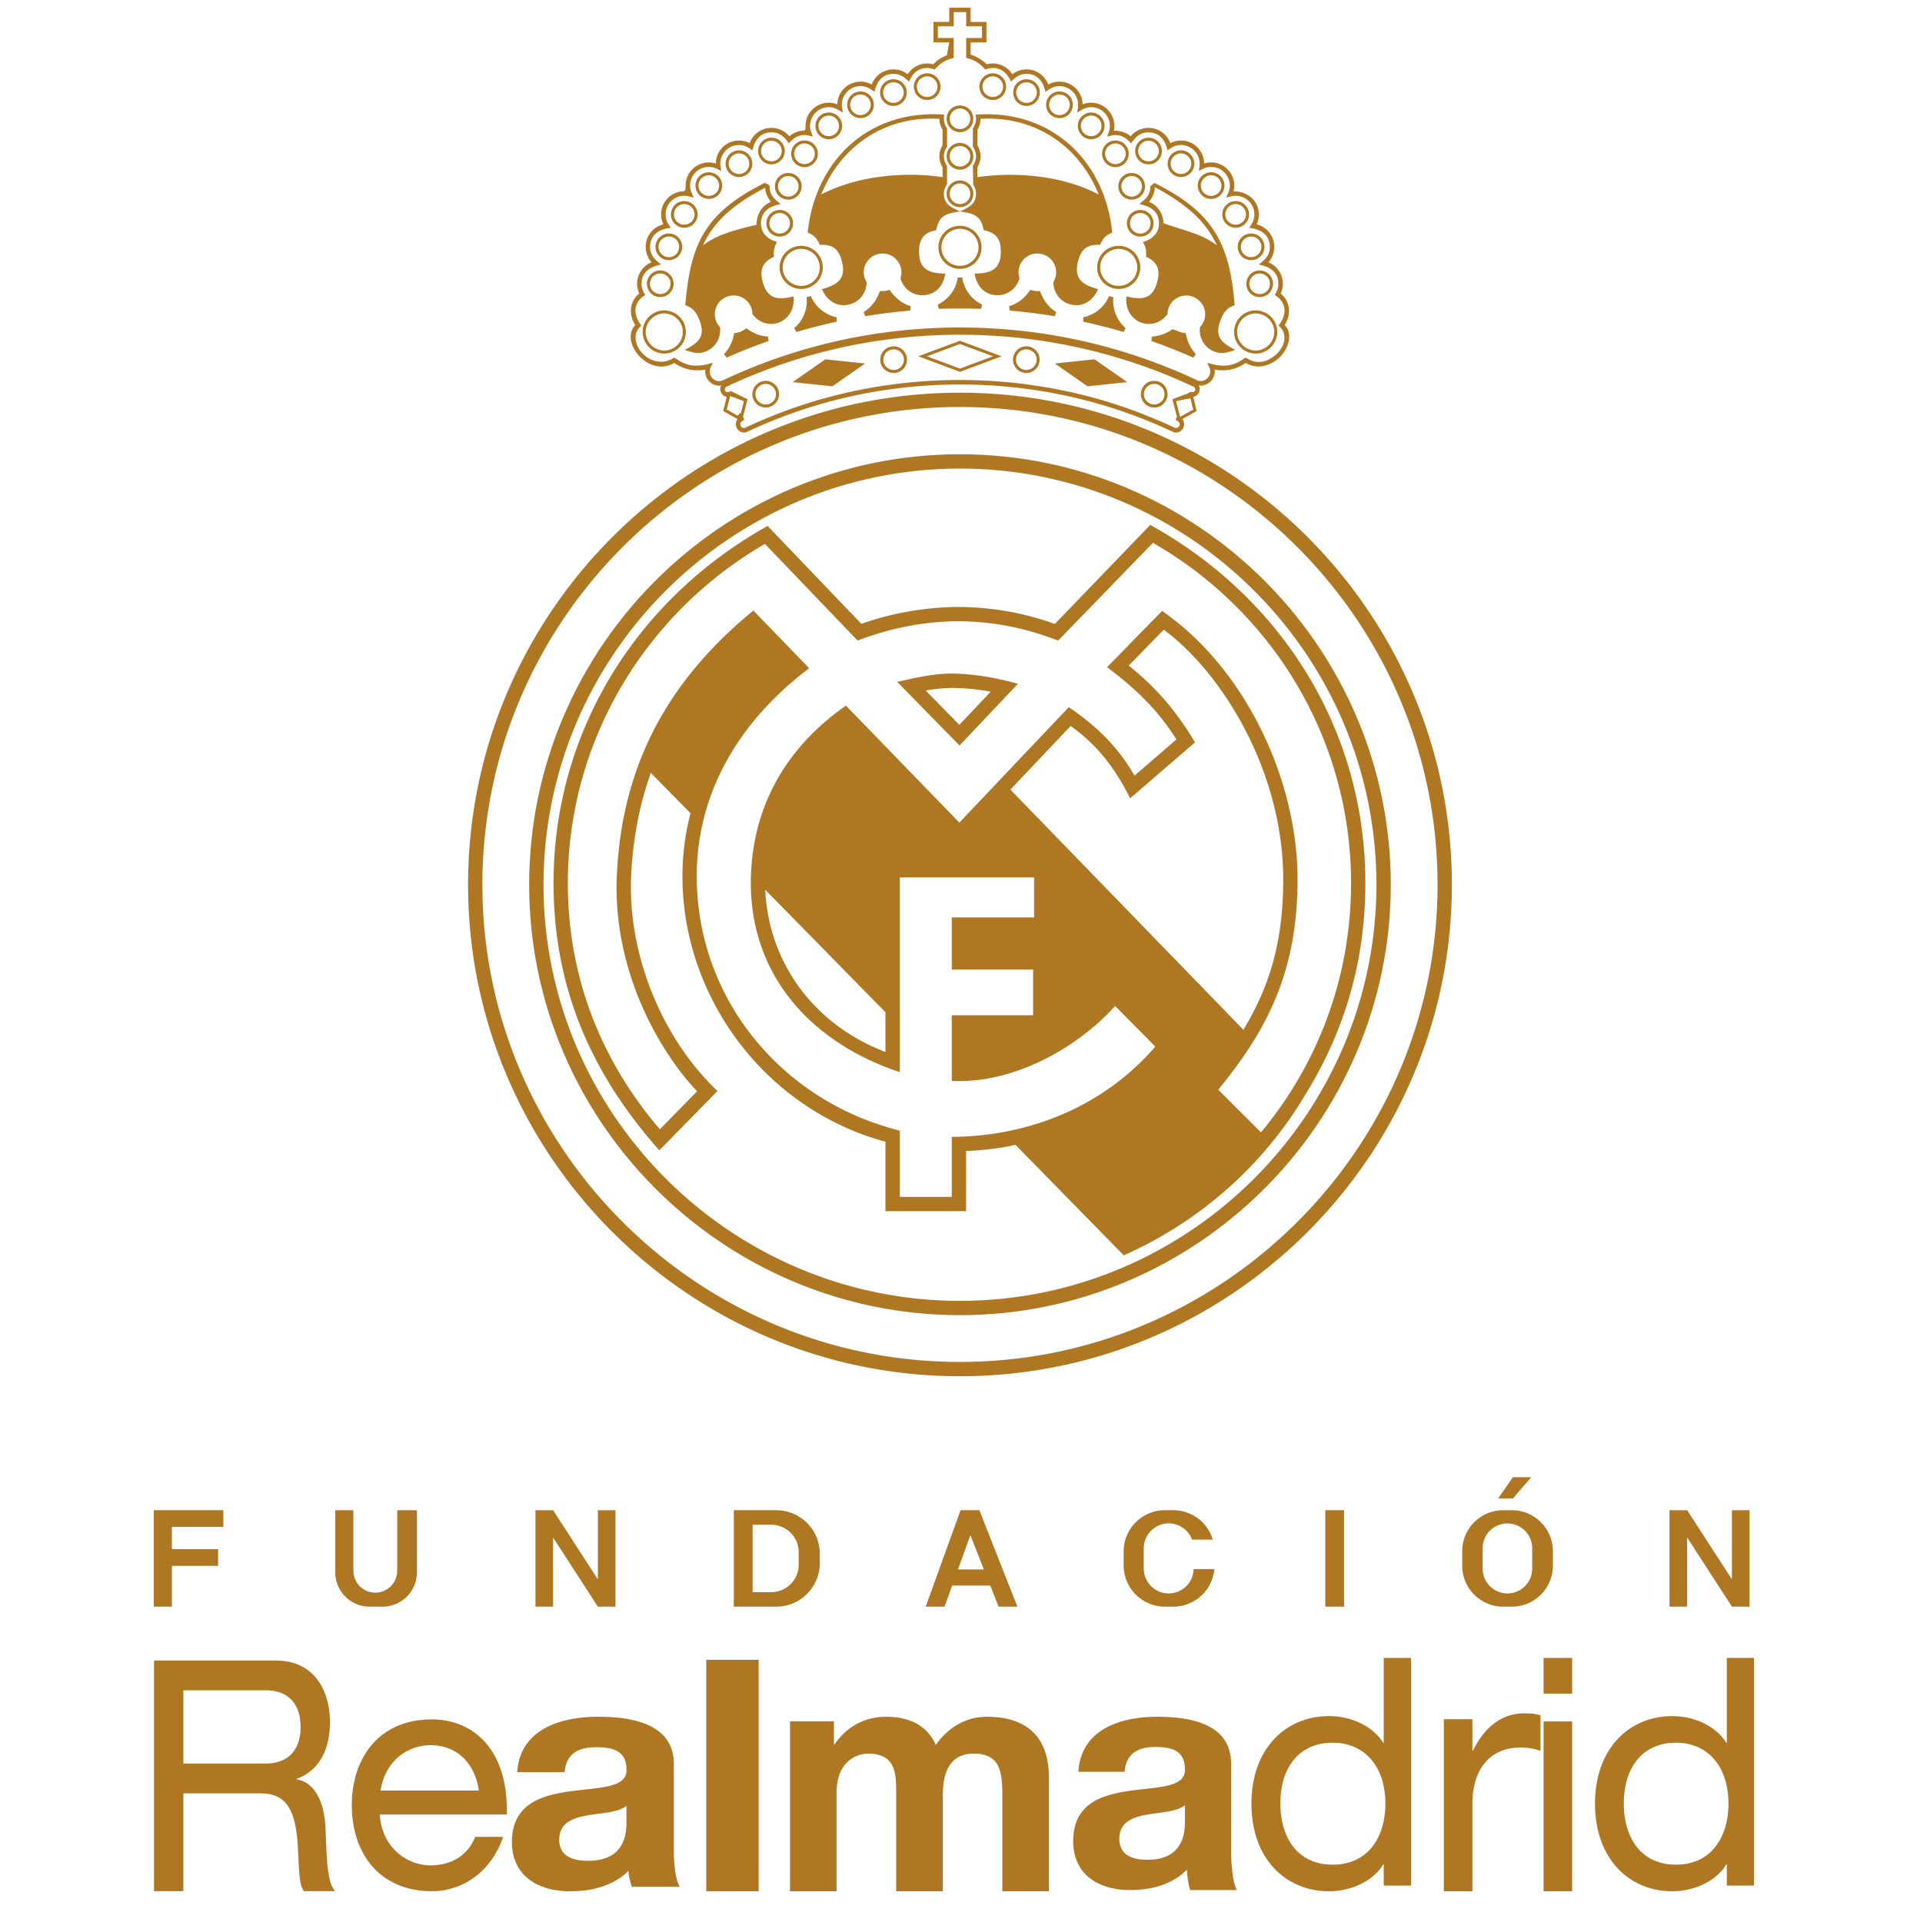 Fundacion Real Madrid Coaching Convention Fundacion Real Madrid Coaching Convention